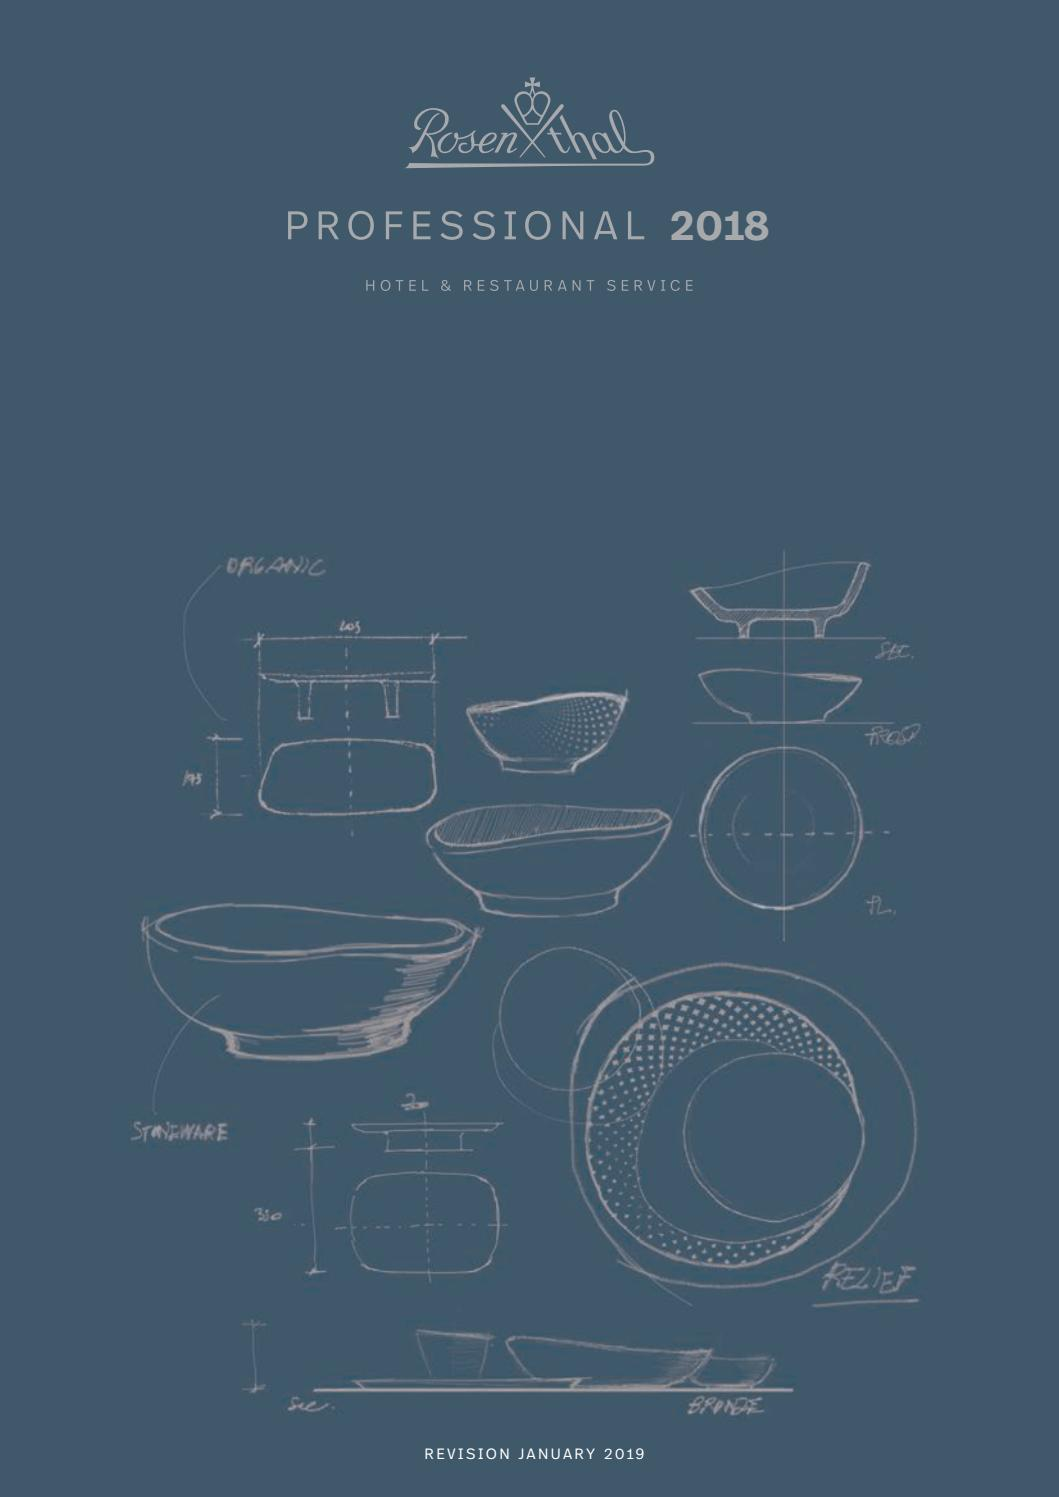 Table Carree Exterieur Best Of Rosenthal Professional 2019 by B & N Service Ag issuu Of 34 Élégant Table Carree Exterieur